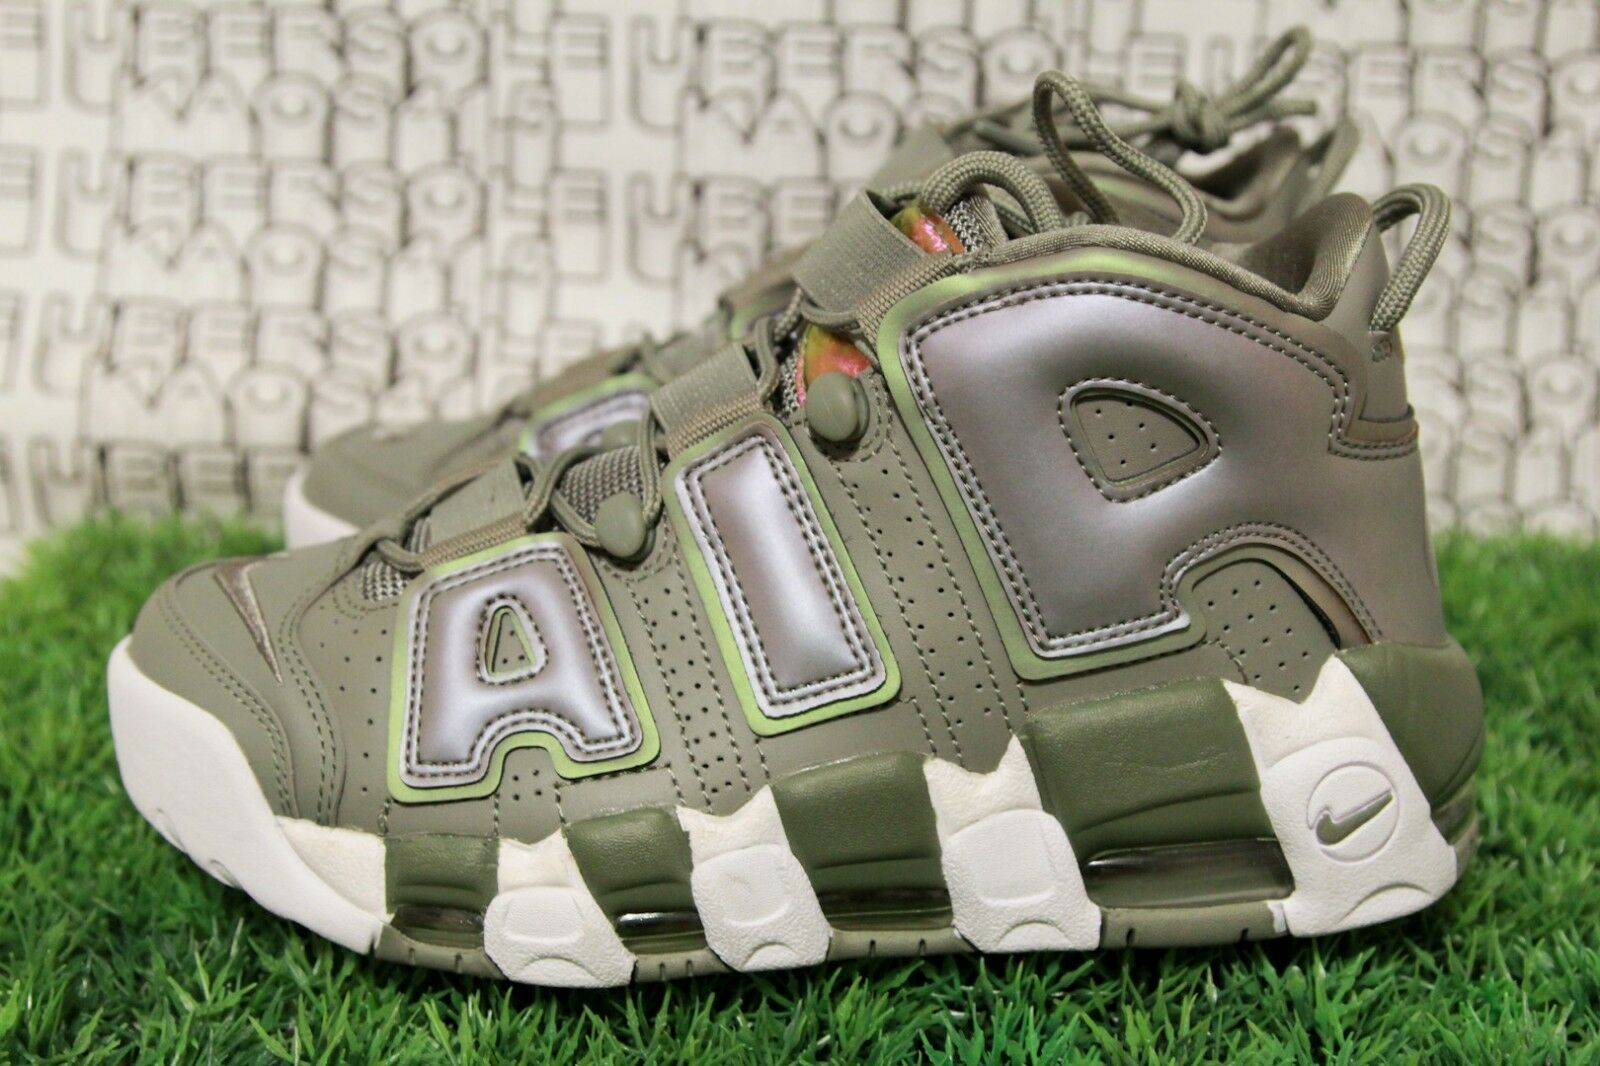 best sneakers 484db 587ae ... NEW Nike Uptempo White Iridescent WOMEN Green Stucco supreme 917593-001  qs WOMEN Iridescent 7.5 ... Nike Air More Uptempo Iridescent Unisex Dark ...